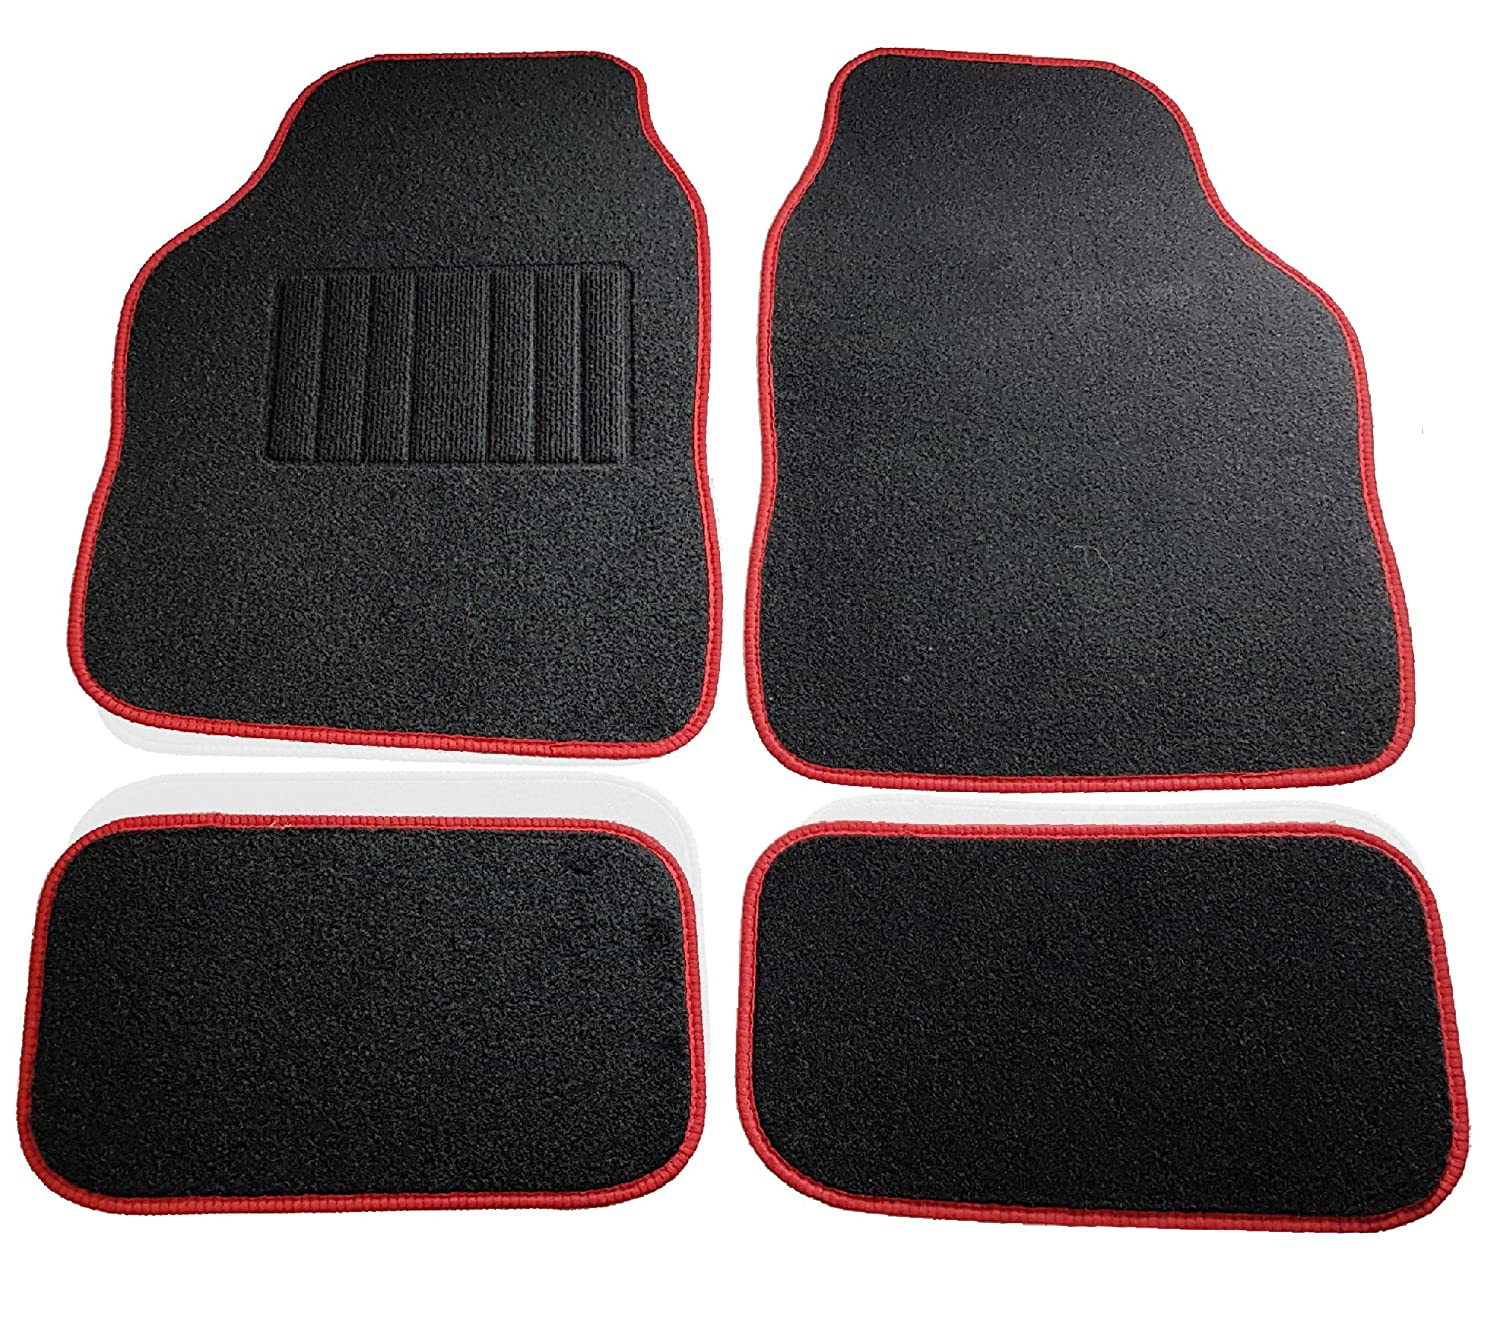 Safe Travel 27500 Universal Car Mats, Right Hand Drive (RHD), Carpet Heel, Black Binding SafeTravel